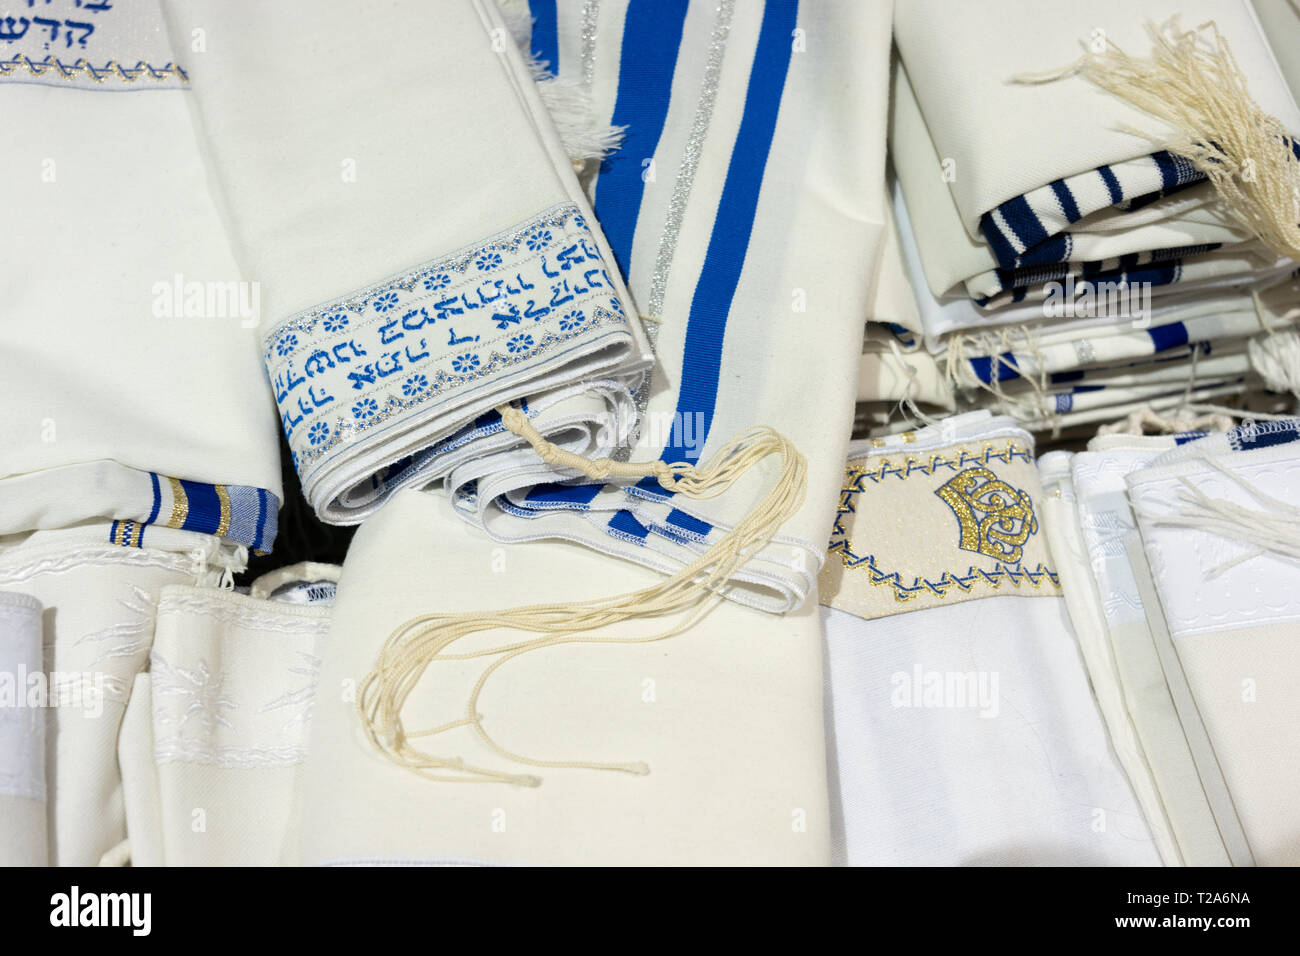 talit,  tallit covering used in Jewish traditions - Stock Image